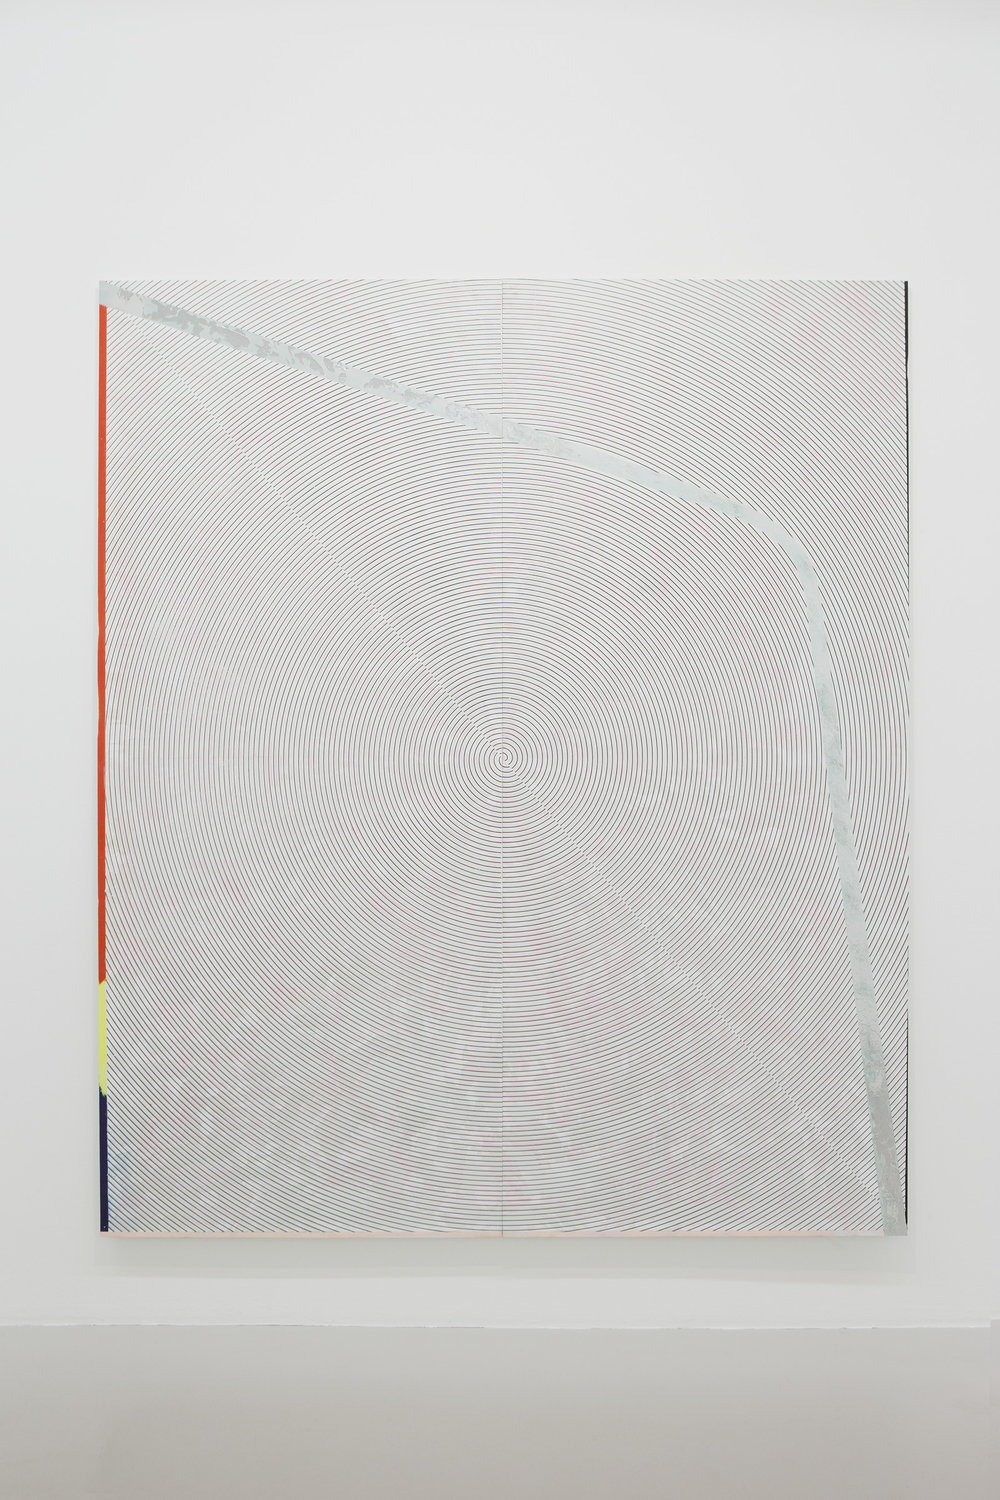 Nicolas Roggy,  Untitled,  2014, gesso, acrylic medium, pigment, acrylic, silkscreen and silver leaf on PVC, 92.5 x 78.75 in.